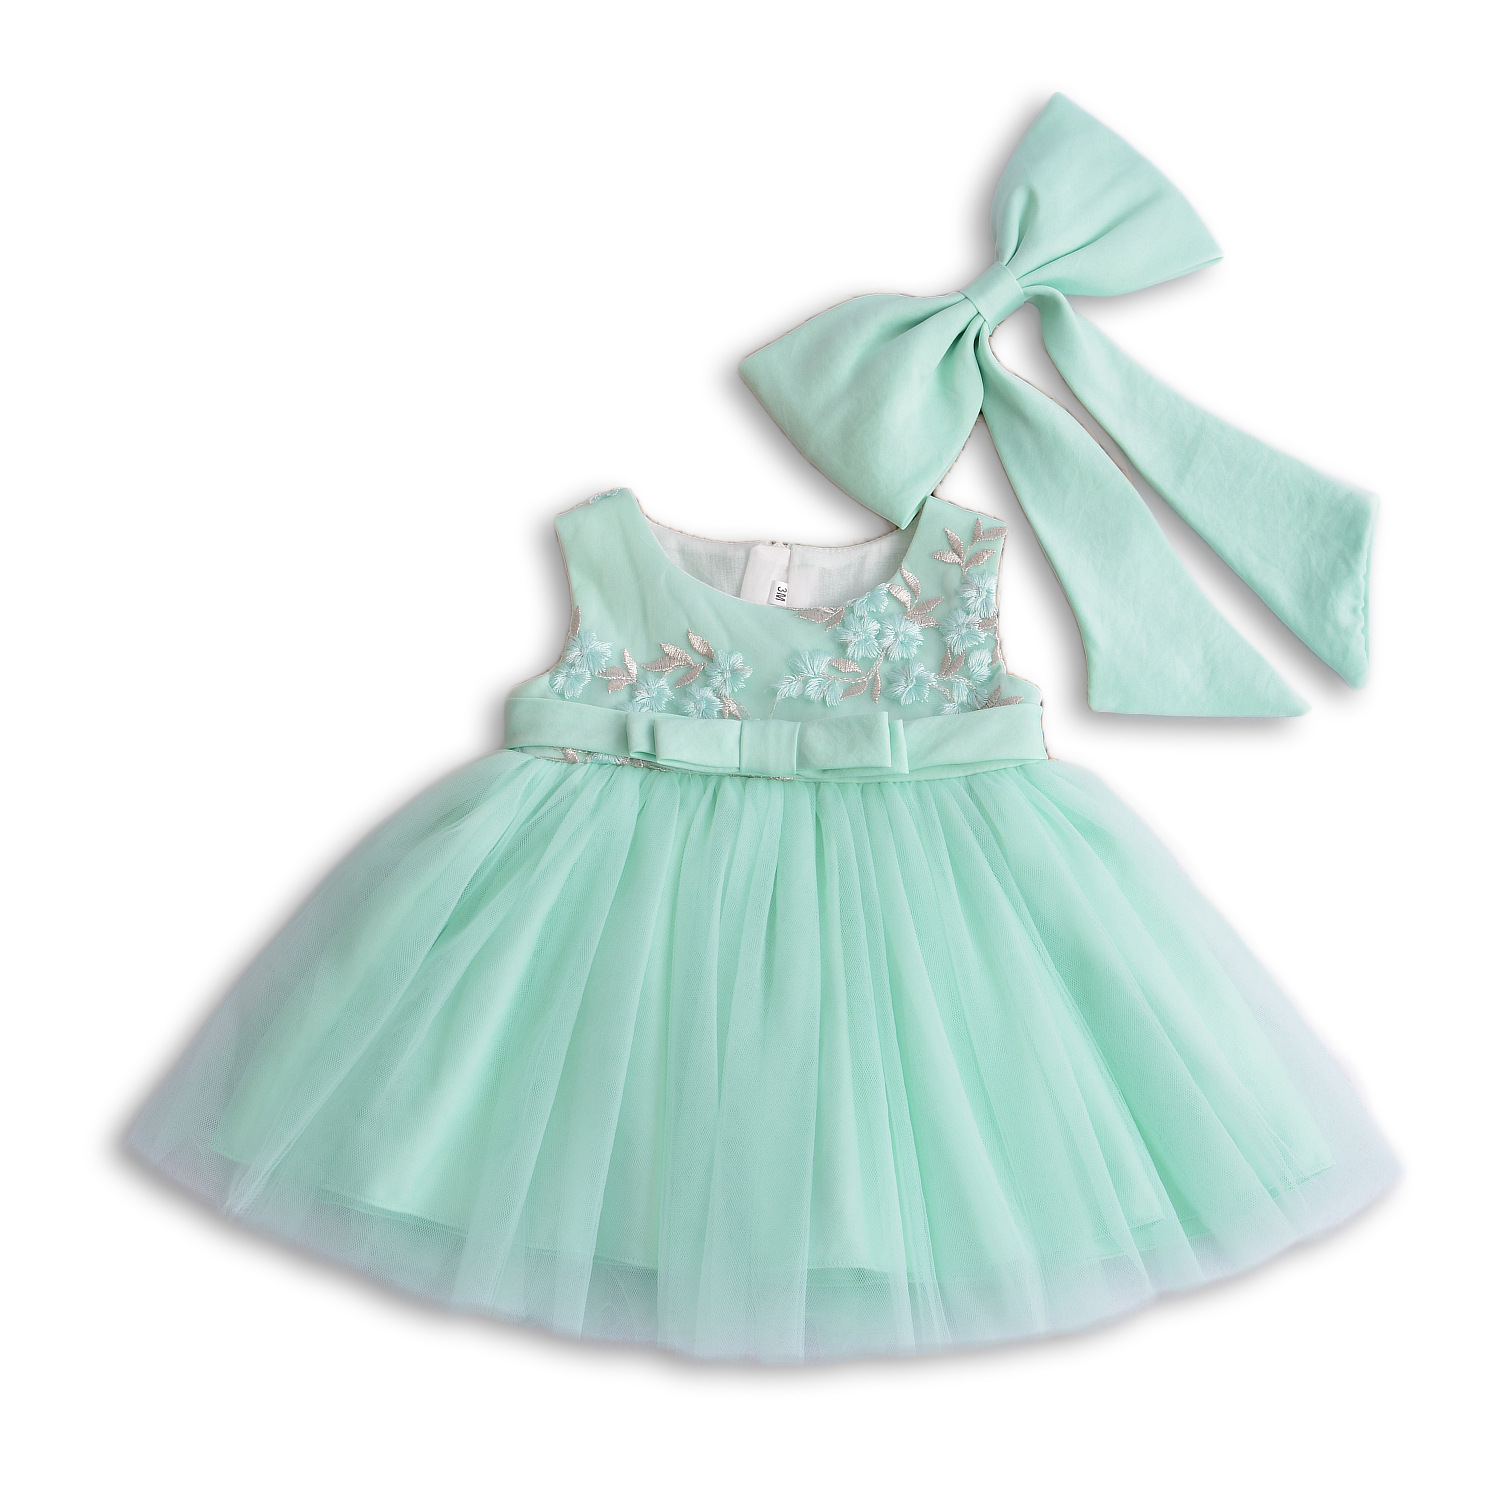 6639f0c1bd60 Green Bow 1 Year Old Birthday Baby Girl Dress Party Wear Vestido Summer  2018 Toddler Baby Girls Clothes 3 to 24 Month RBF184036-in Dresses from  Mother ...